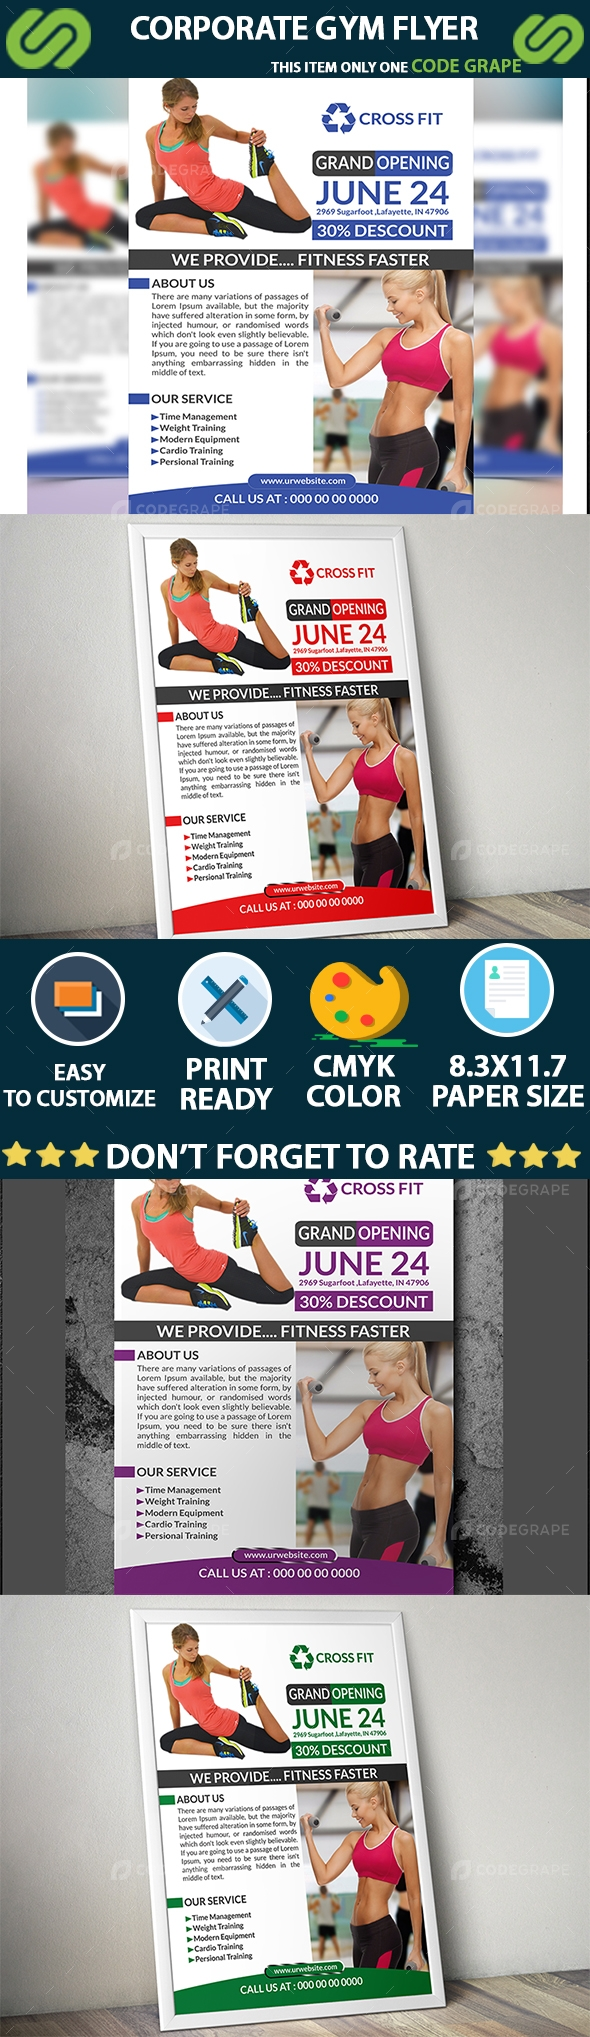 Corporate GYM Flyer